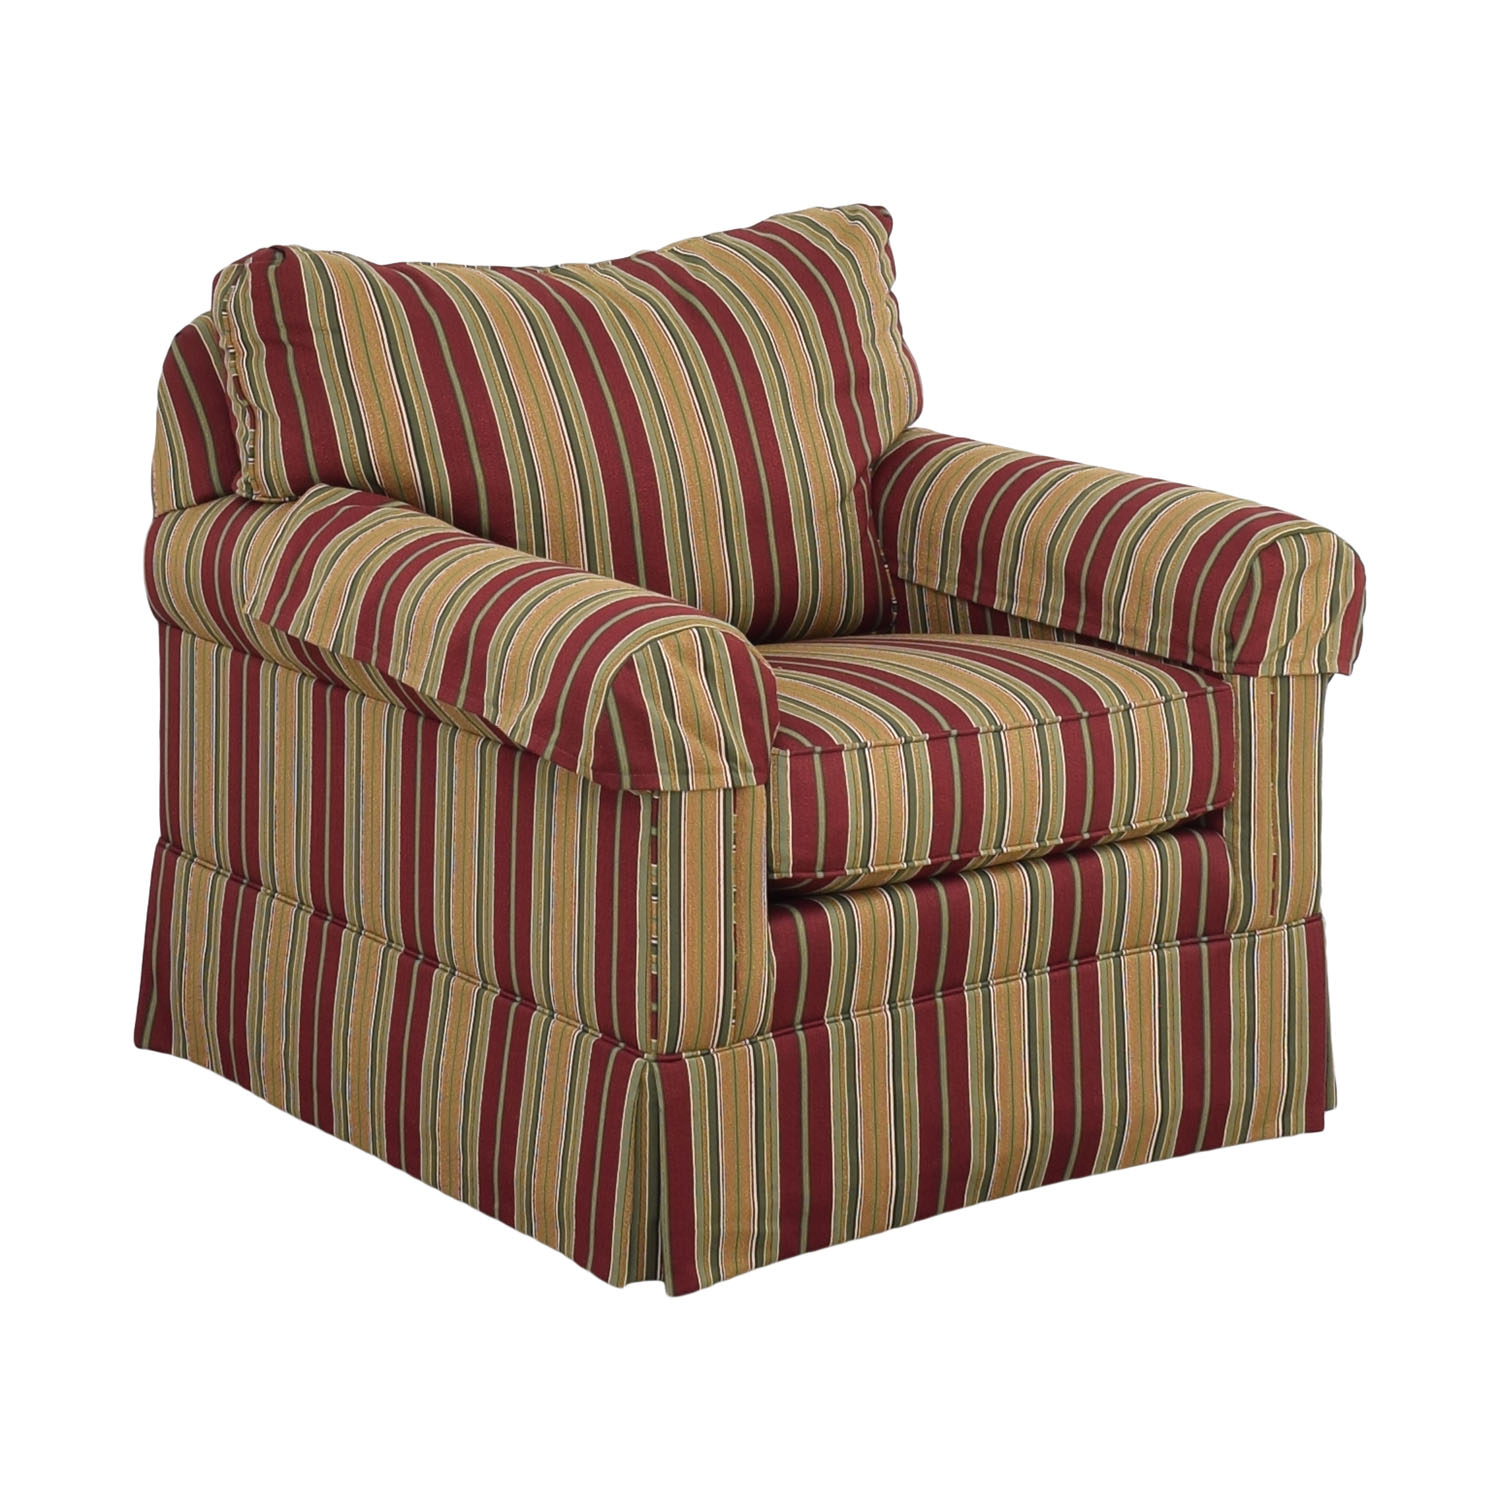 Ethan Allen Slipcovered Chair and Ottoman Ethan Allen